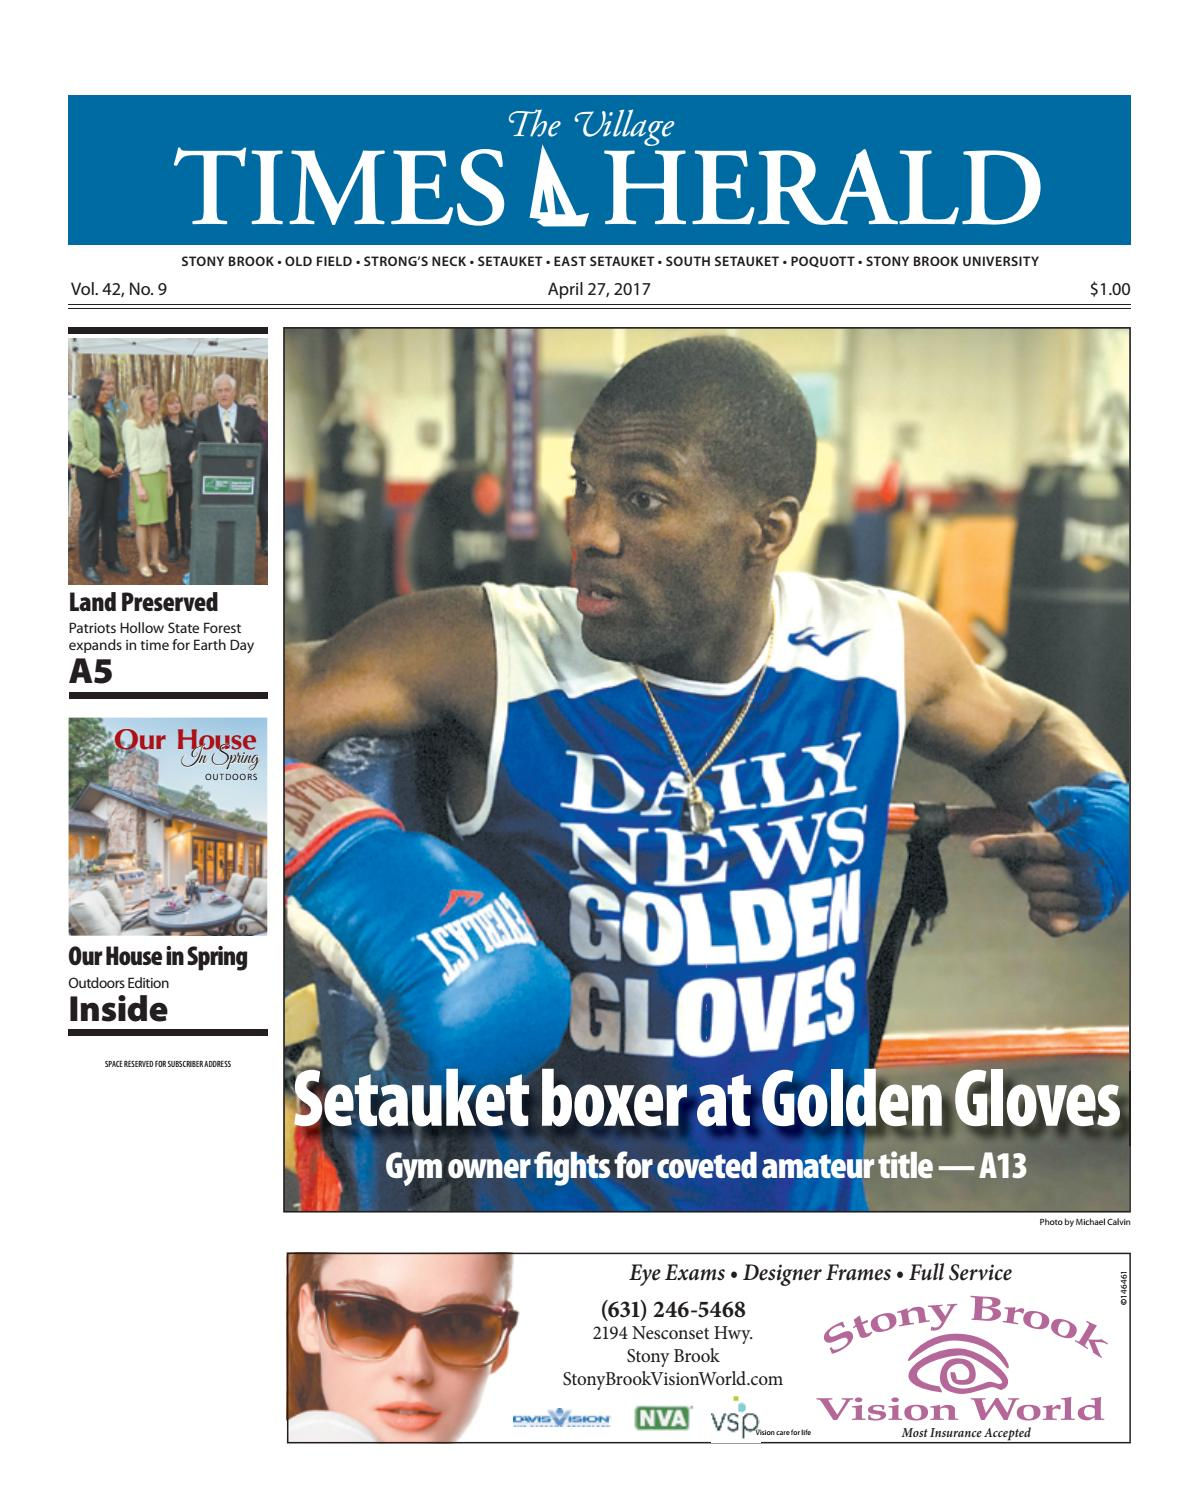 The Village Times Herald - April 27, 2017 by TBR News Media - issuu